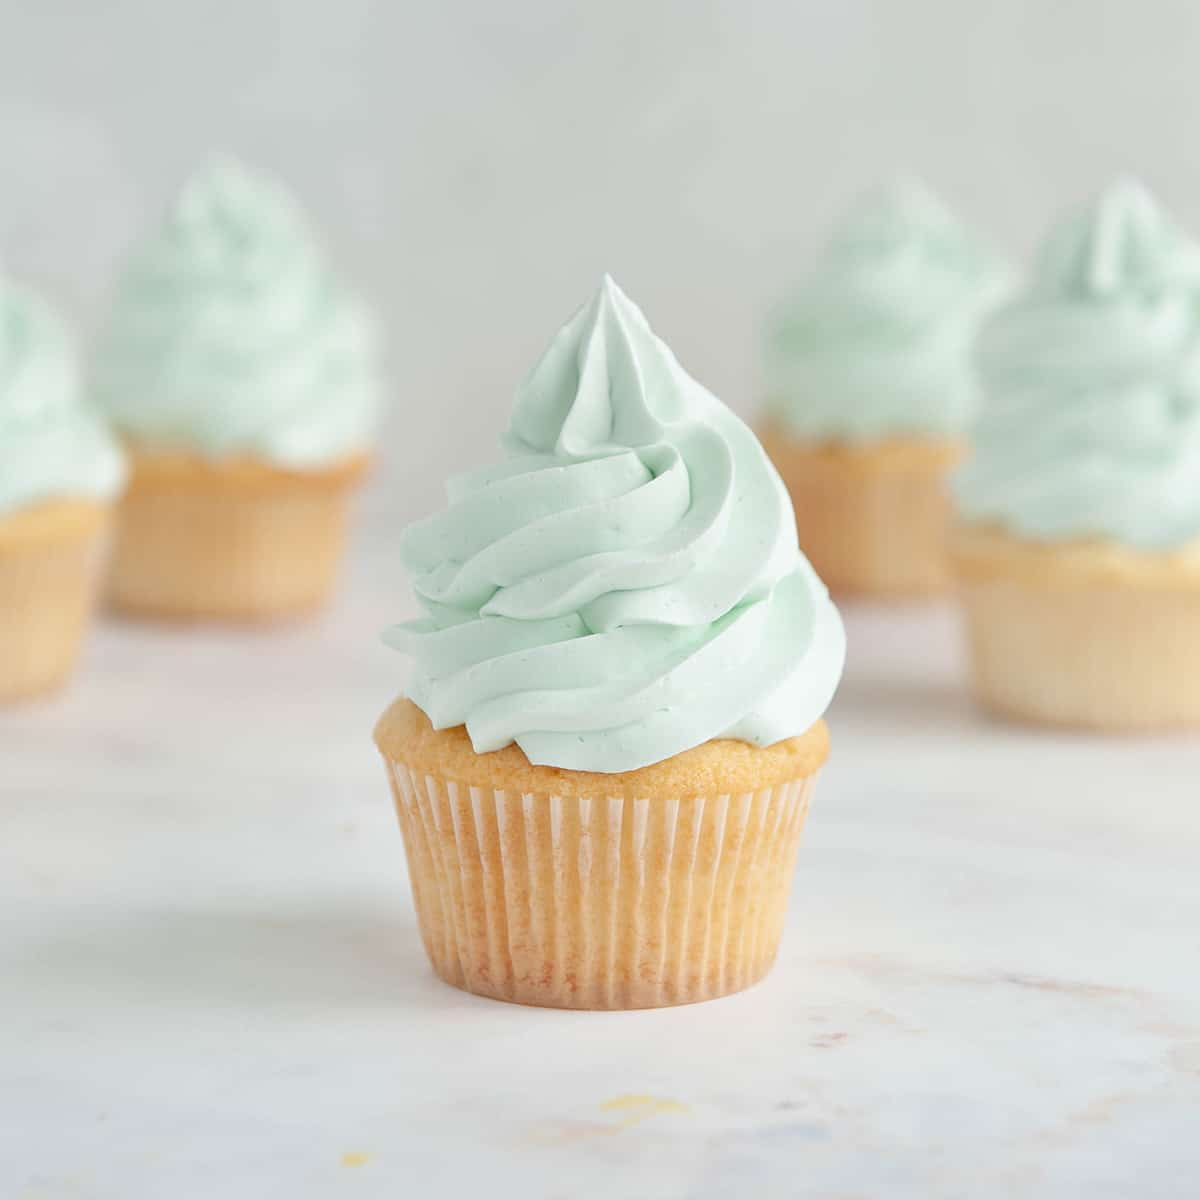 closeup of vanilla cupcake with light blue frosting